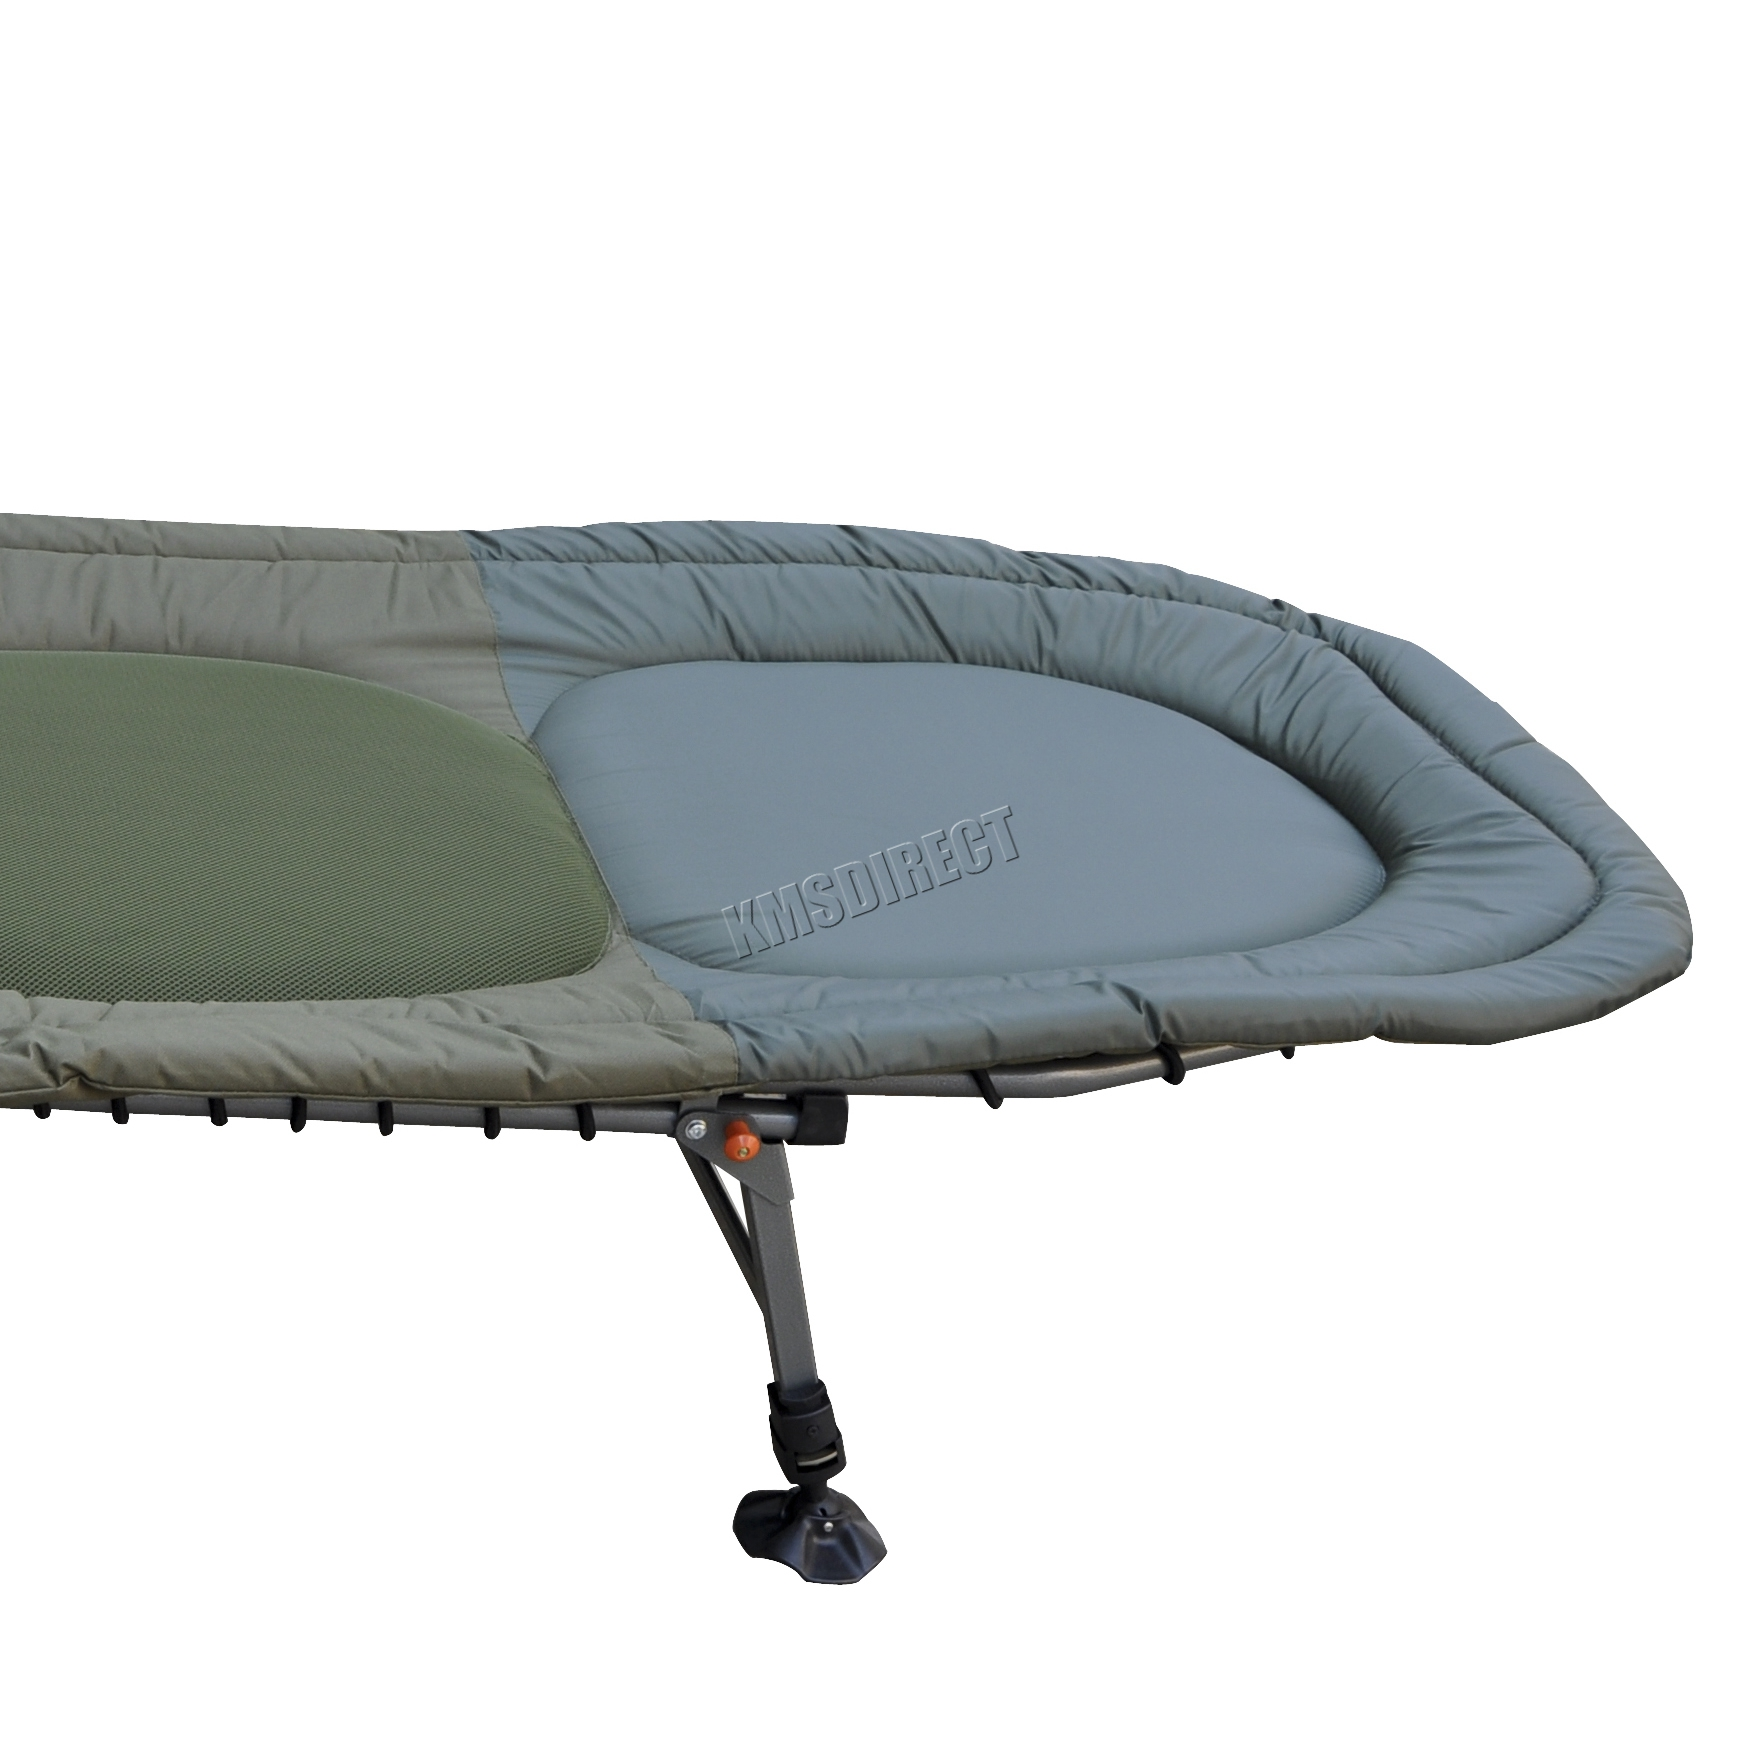 fishing chair bed reviews purple saucer portable carp bedchair camping 6